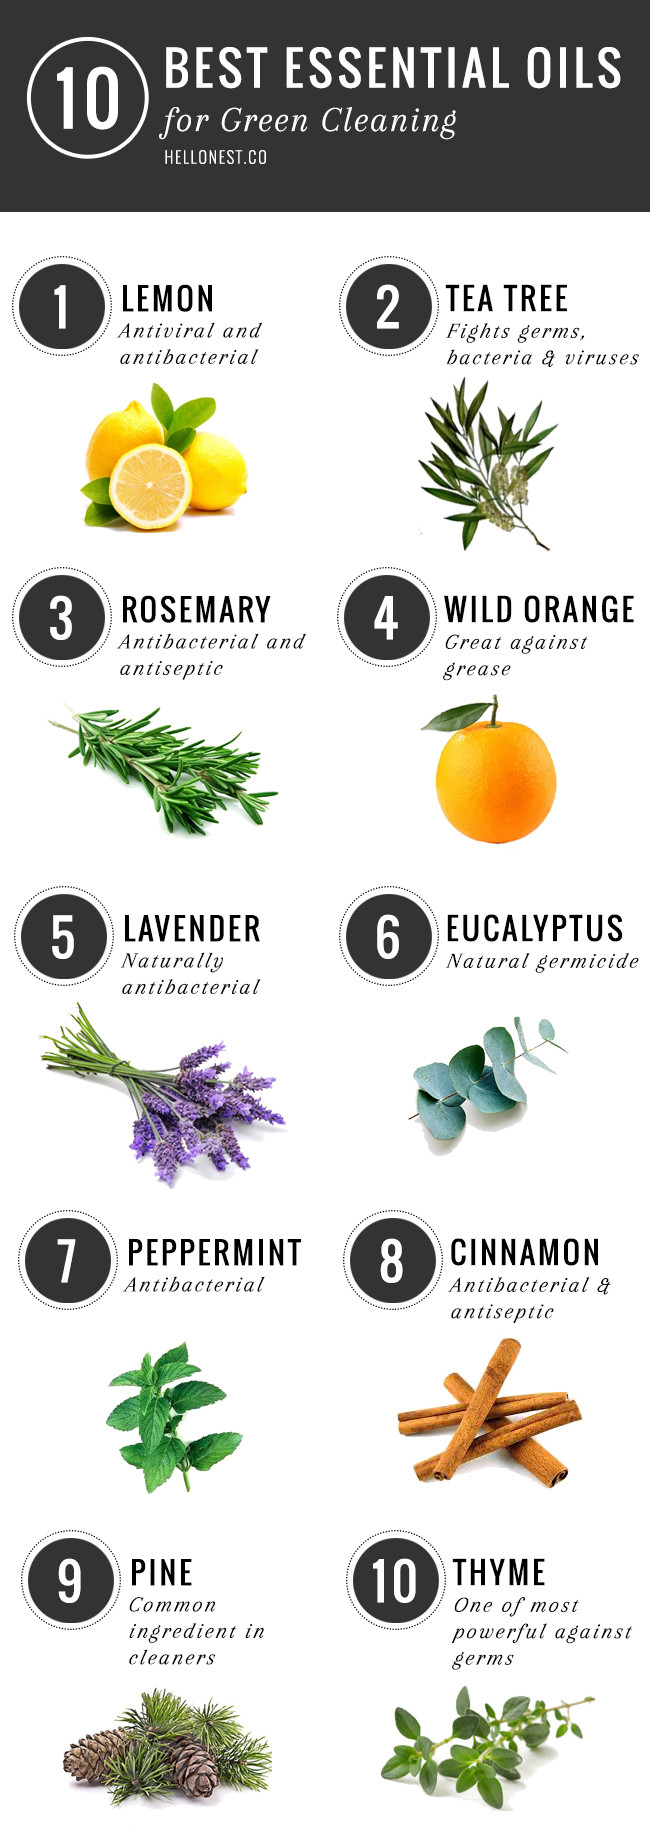 10 Best Essential Oils for Green Cleaning via Hellonest.co